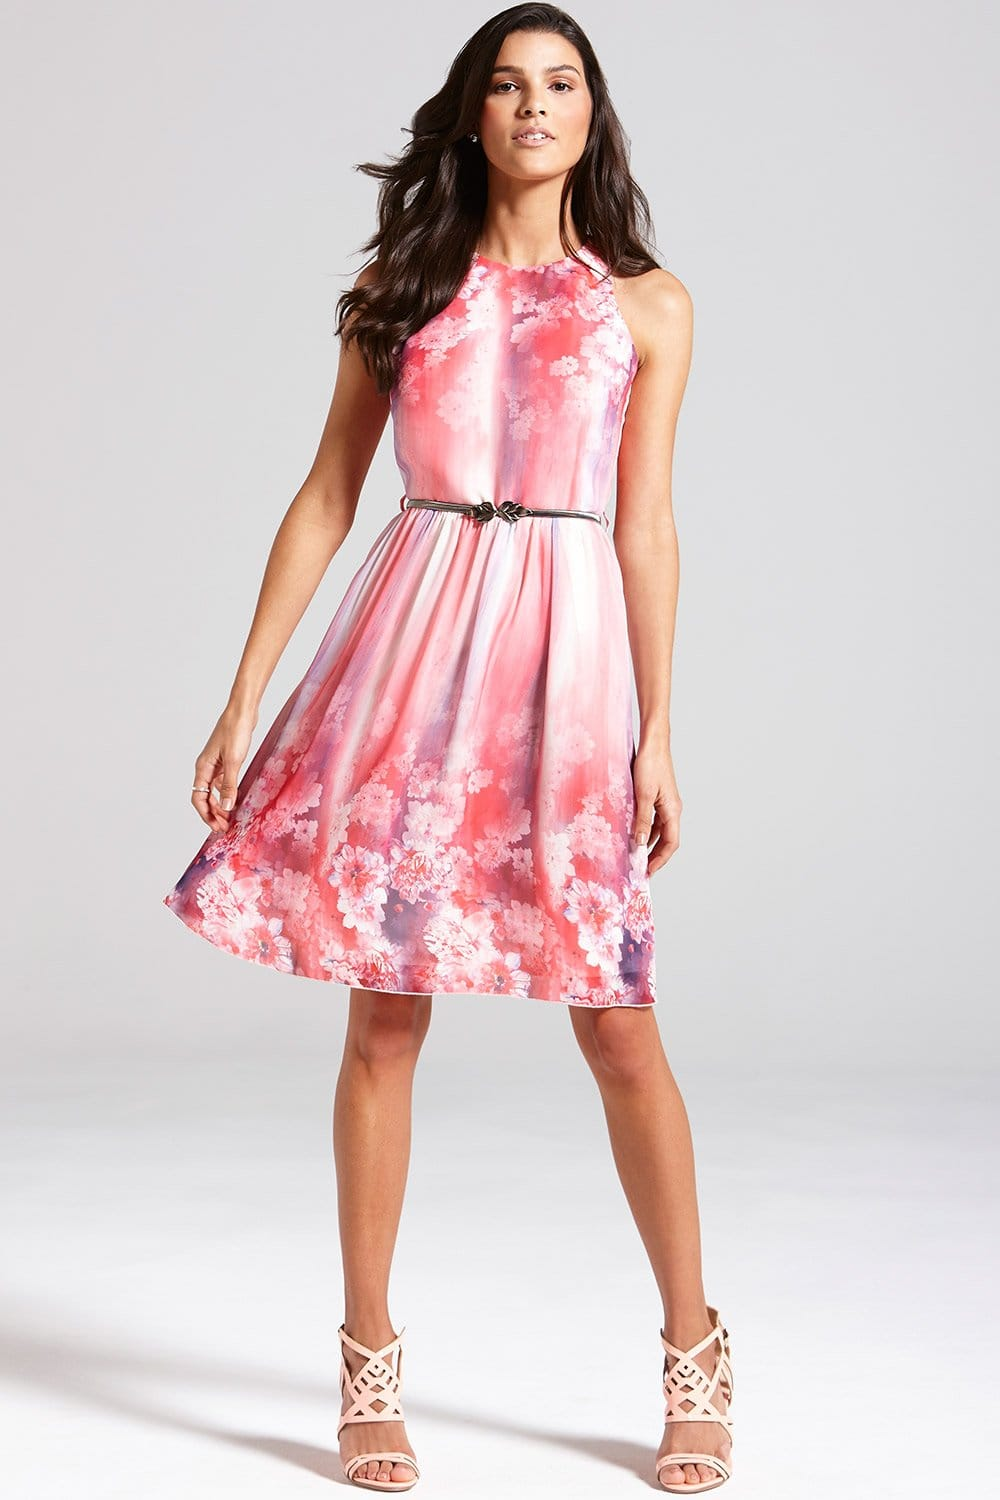 Pink Floral Fit and Flare Dress  from Little Mistress UK